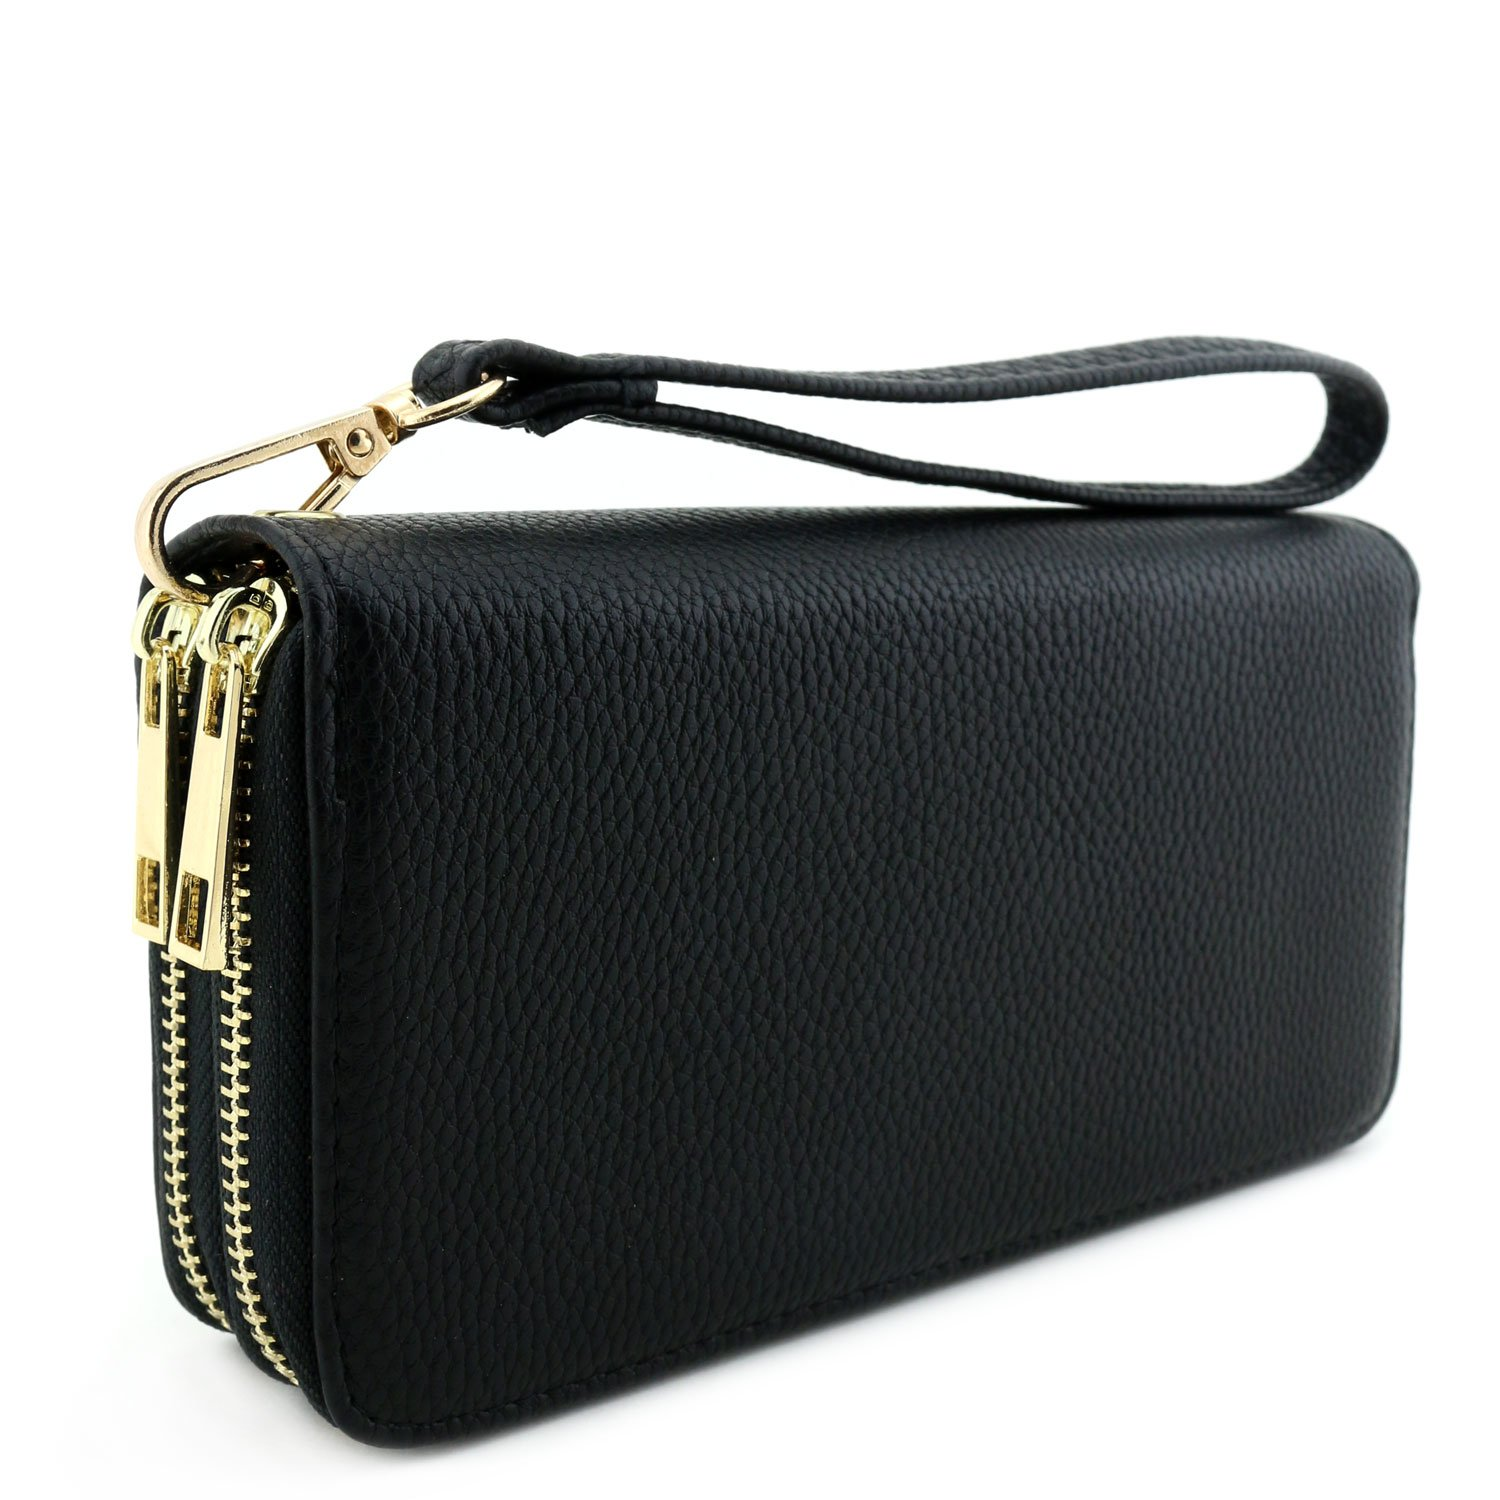 Double Zip Around Wristlet Wallet Black by Alyssa